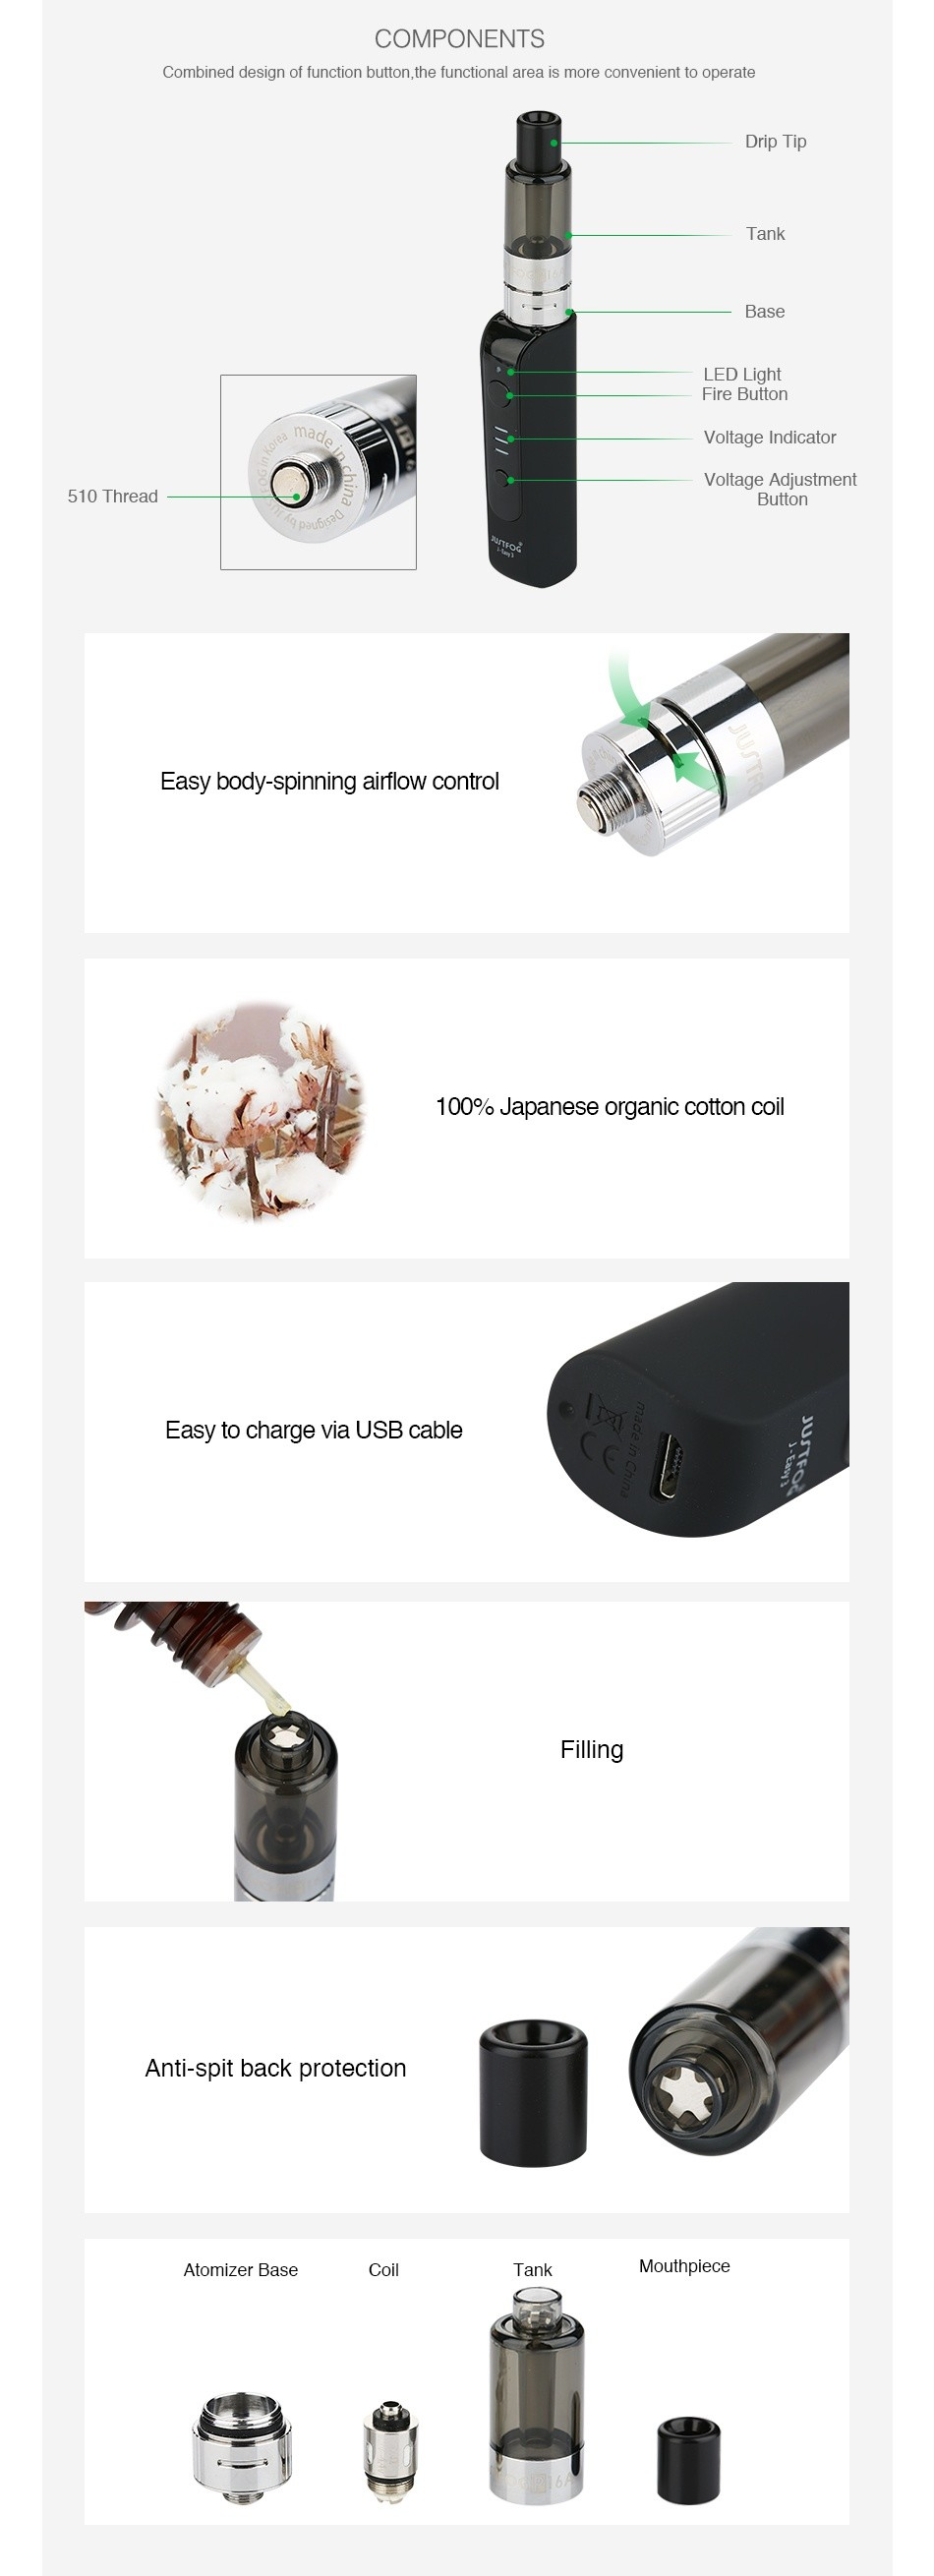 JUSTFOG P16A VV Starter Kit 900mAh COMPONENTS Combined design of function button  the functional area is more convenient to operate Dri Tank Voltage Adjustmen 10 Thread Button Easy body spinning airflow control 100  Japanese organic cotton coil Easy to charge via usB cable Filling Tank utnplece